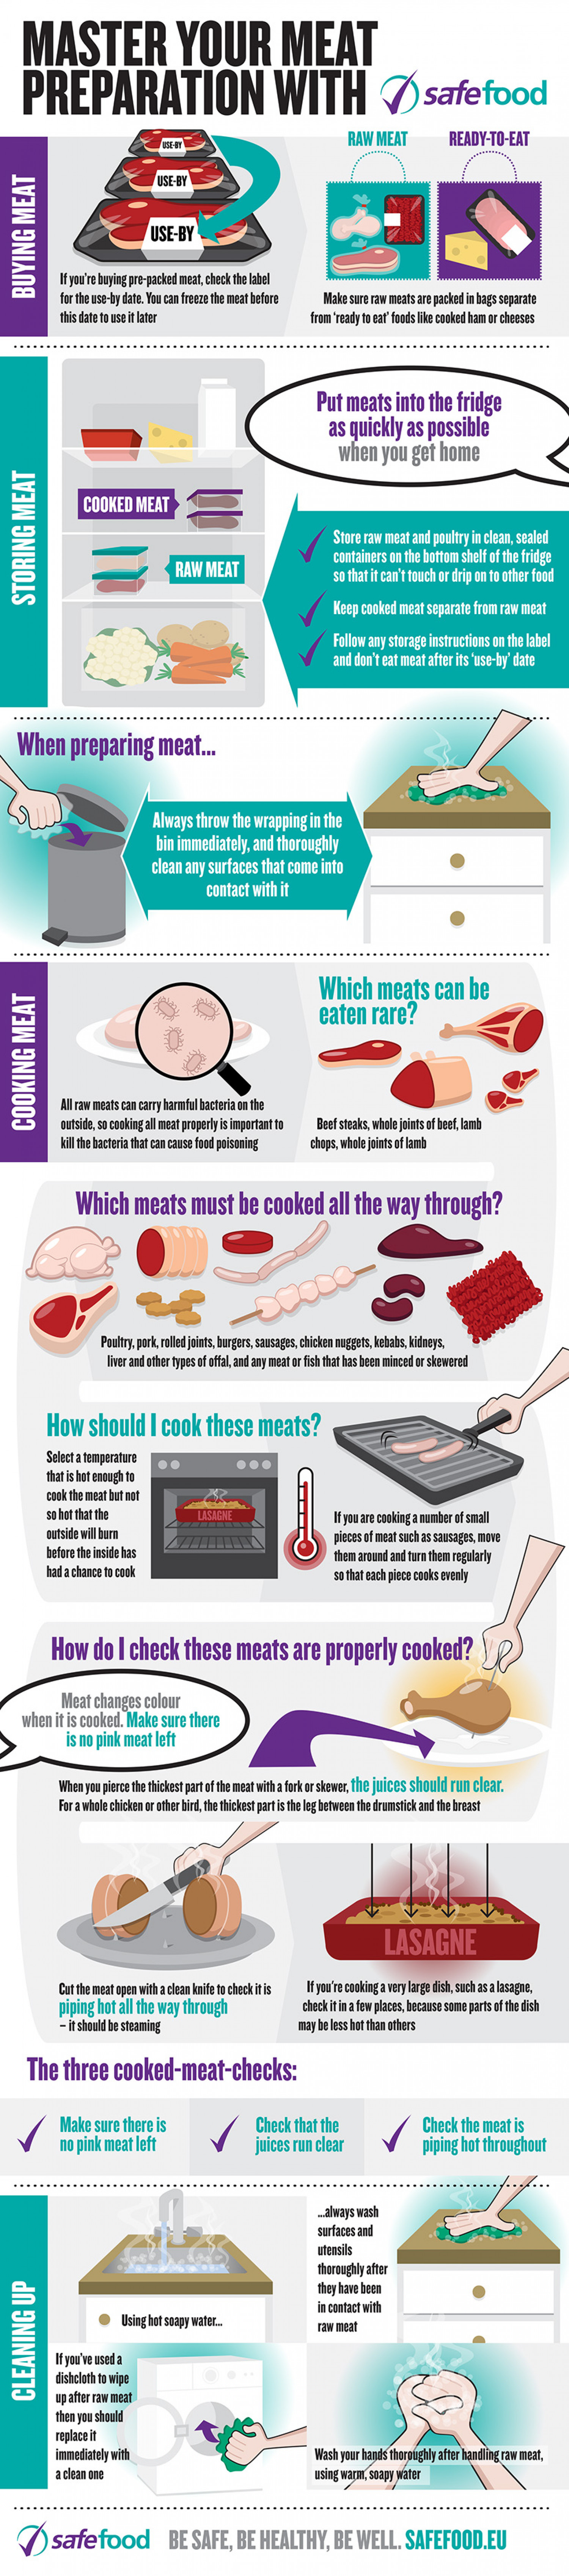 Mastering Meat Preparation! Infographic